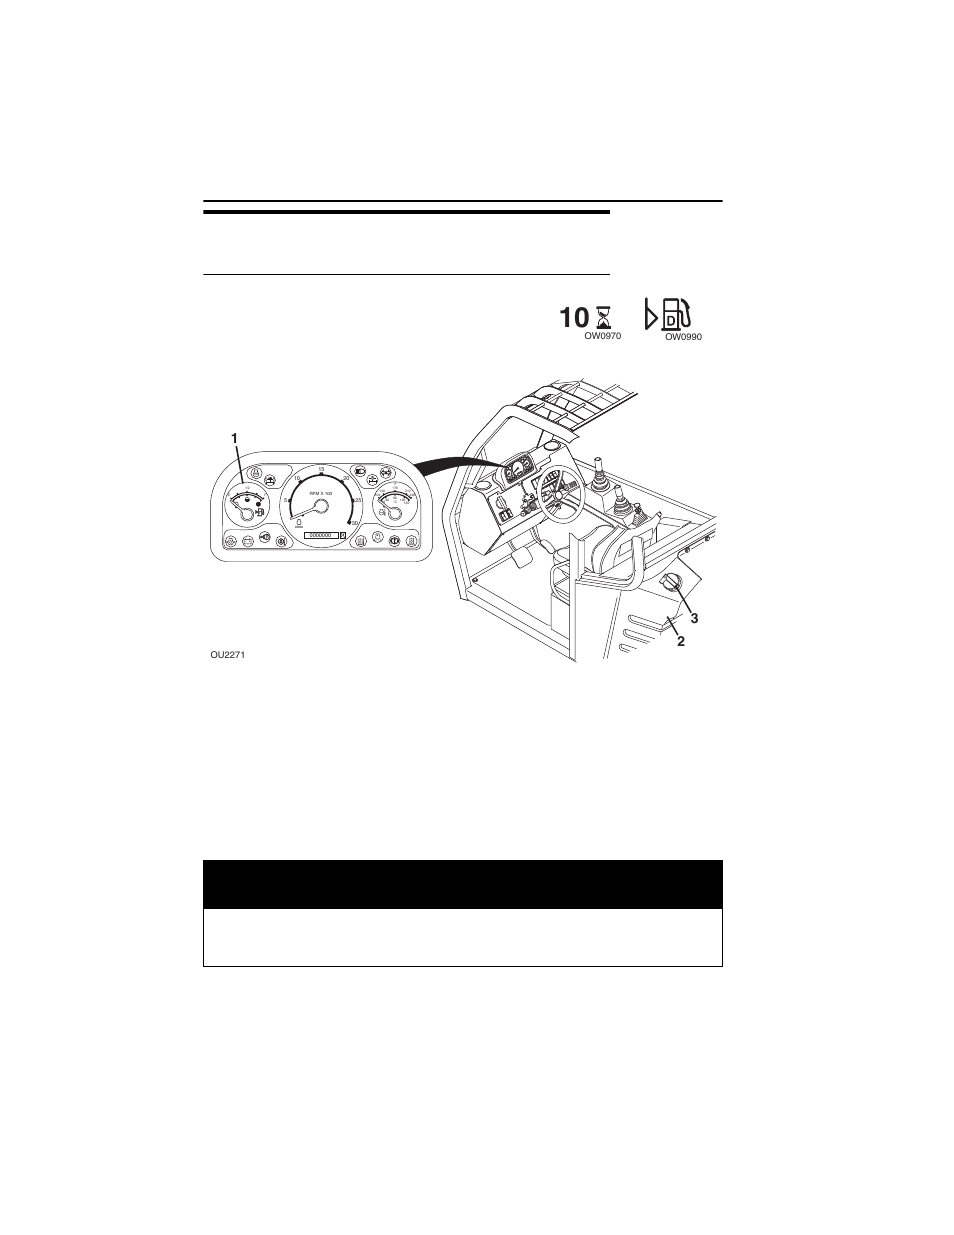 5 operator maintenance instructions, Fuel system, 5 operator maintenance  instructions -8 | Lull 944E-42 Operation Manual User Manual | Page 116 / 150